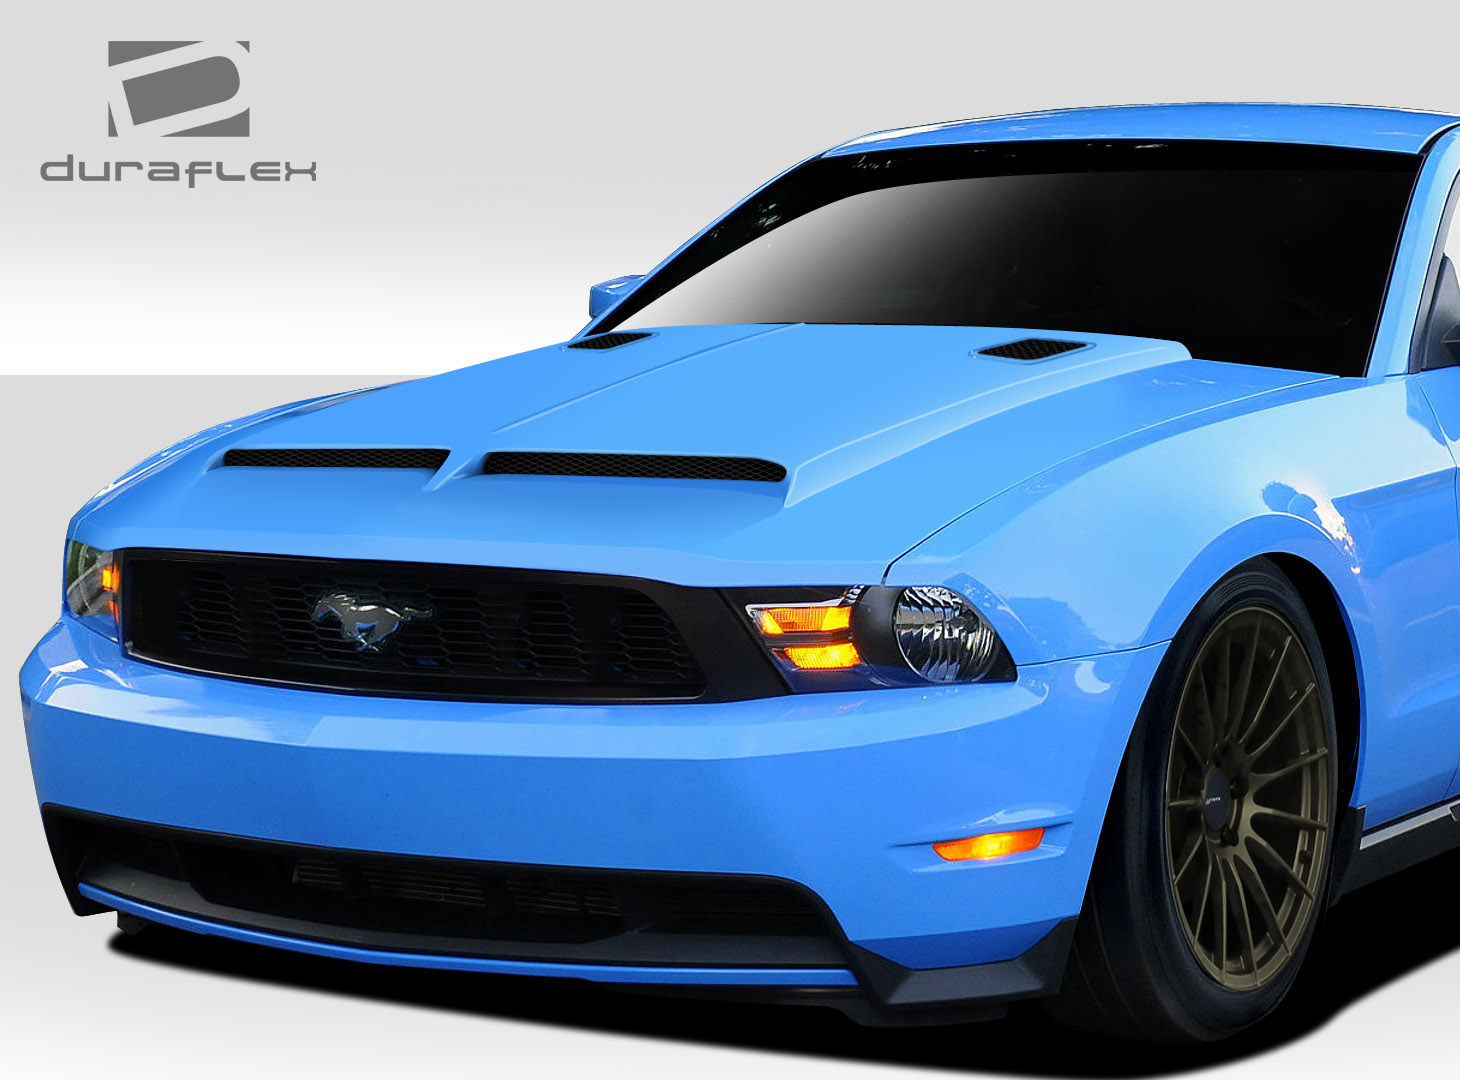 extreme dimensions 2010 2012 ford mustang duraflex gt500 hood 1 piece wholesale car parts. Black Bedroom Furniture Sets. Home Design Ideas